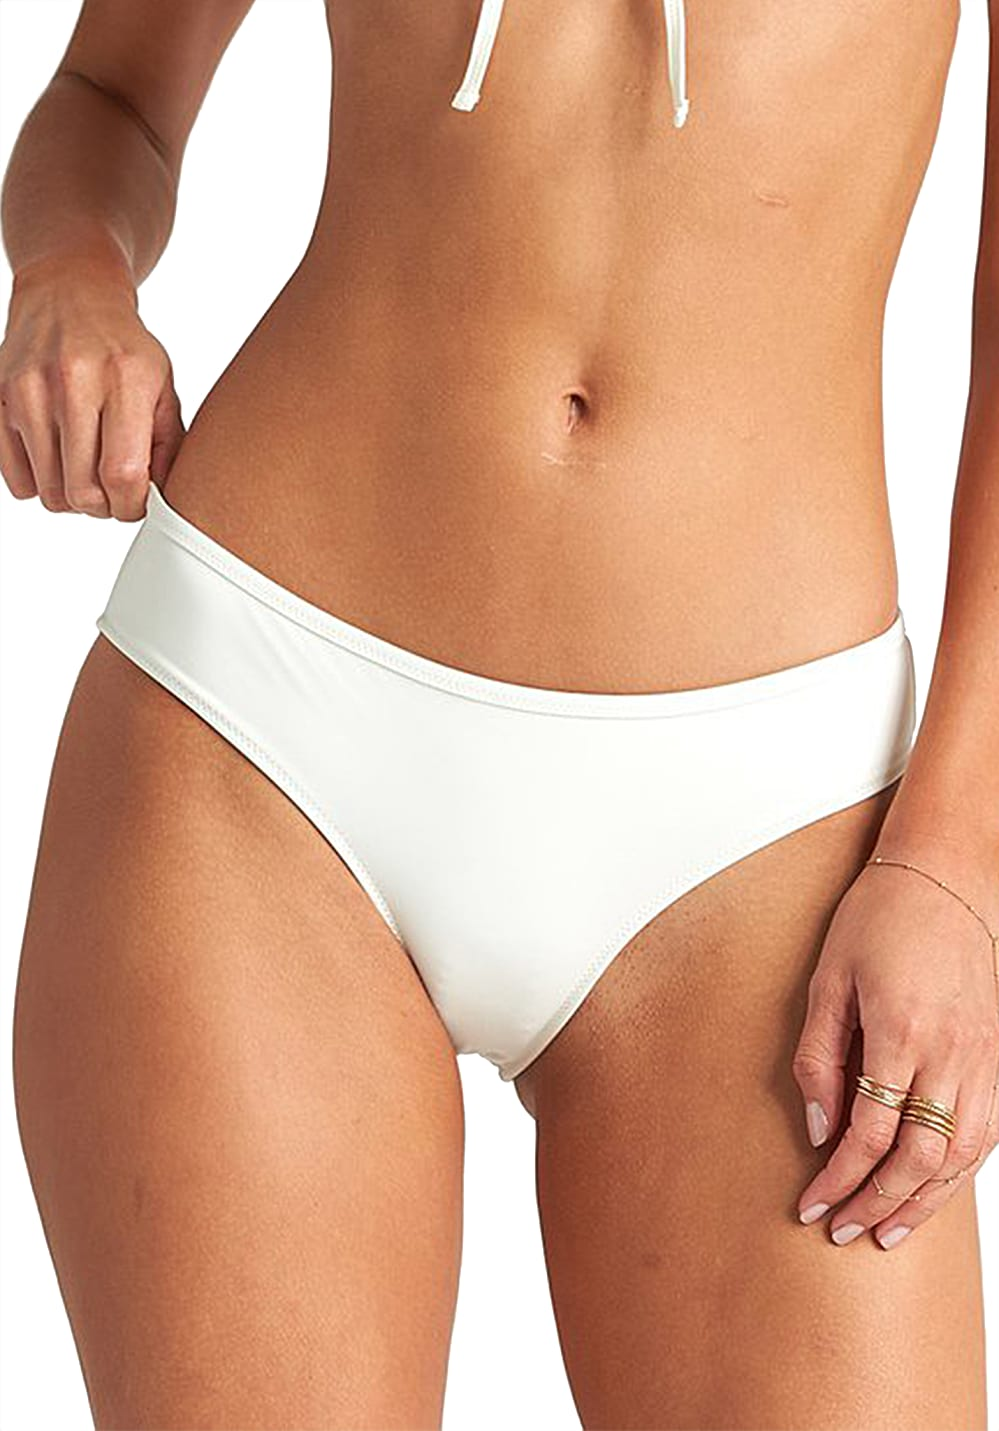 Bademode - BILLABONG Onyx Wave Hawaii Lo Bikini Hose für Damen Weiß  - Onlineshop Planet Sports